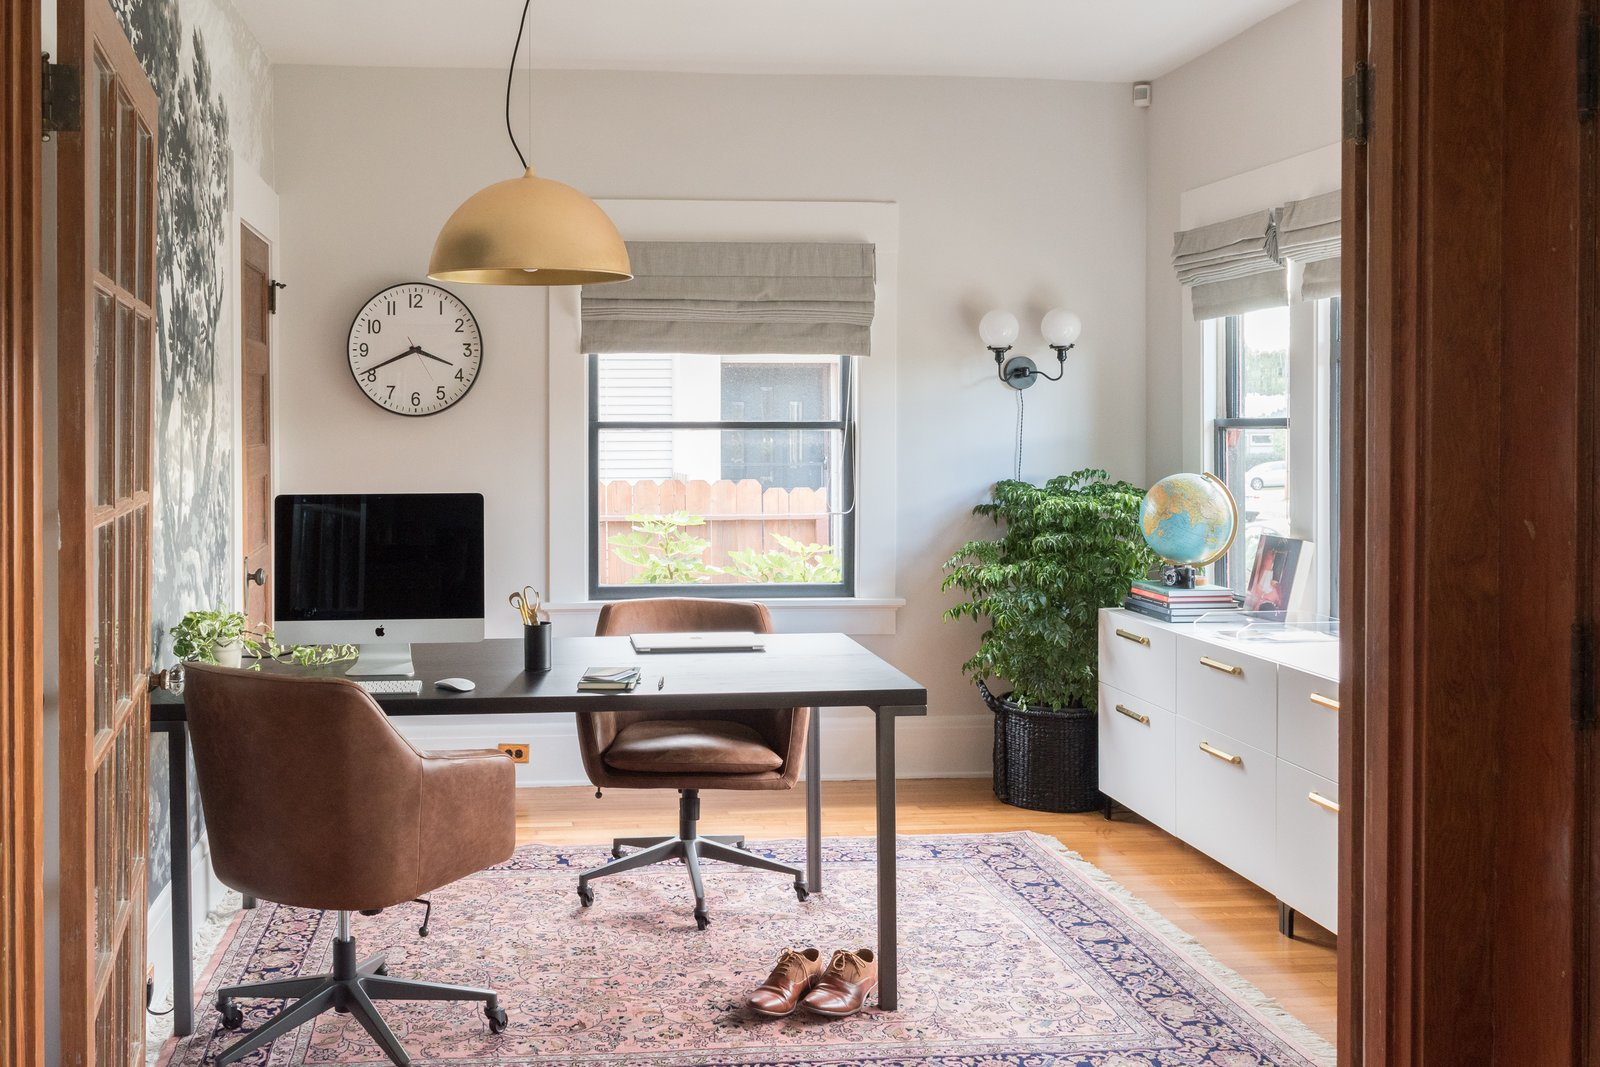 Office, Storage, Study, Library, Lamps, Desk, Craft Room, Chair, and Medium Hardwood The home office was renovated in seven weeks as part of the 2017 One Room Challenge, and was selected as one of two winners.  Office Medium Hardwood Library Photos from Before & After: A DIY Couple Tackle Their 1915 Craftsman in San Diego